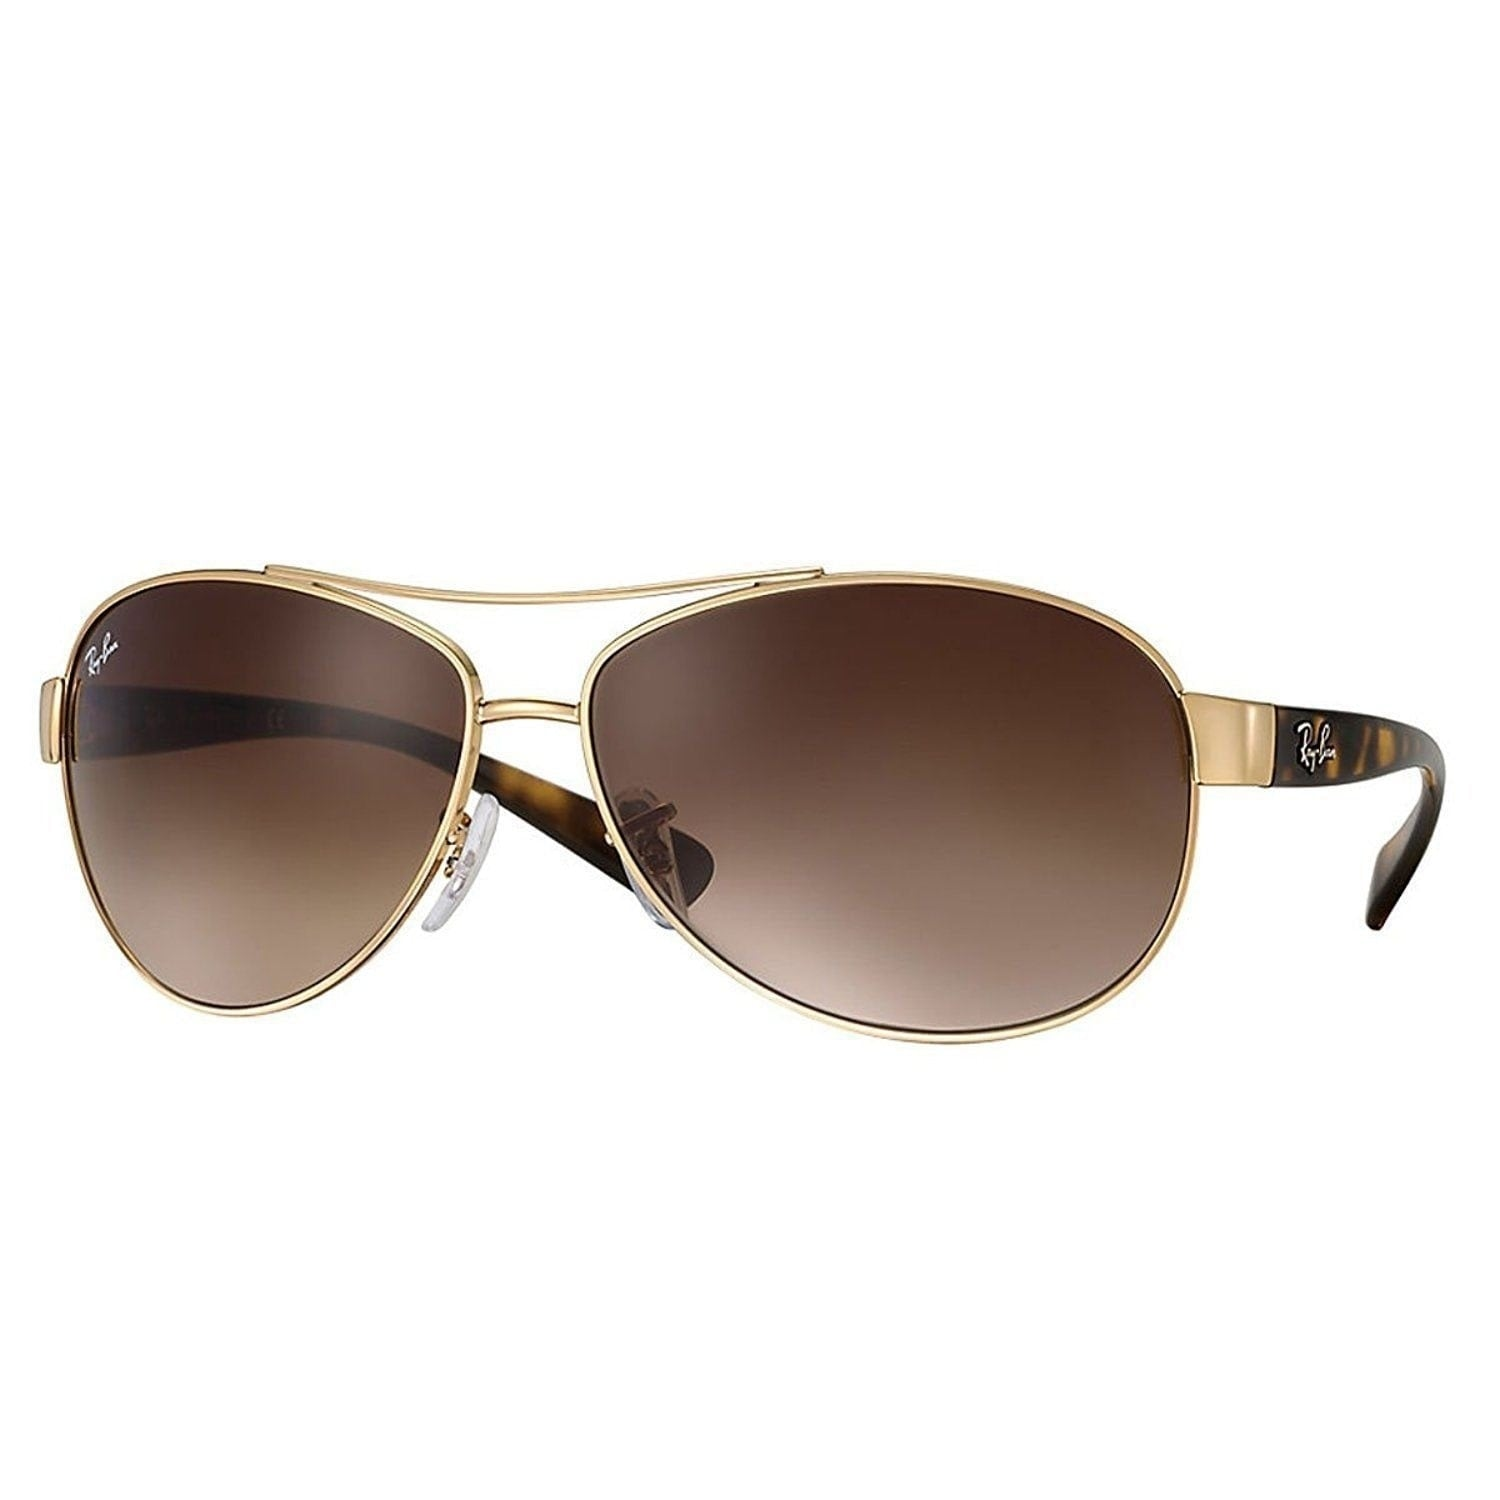 b75b6f9ade8 Shop Ray-Ban RB3386 001 13 Gold Tortoise Frame Brown Gradient 67mm Lens  Sunglasses - Free Shipping Today - Overstock - 14327914